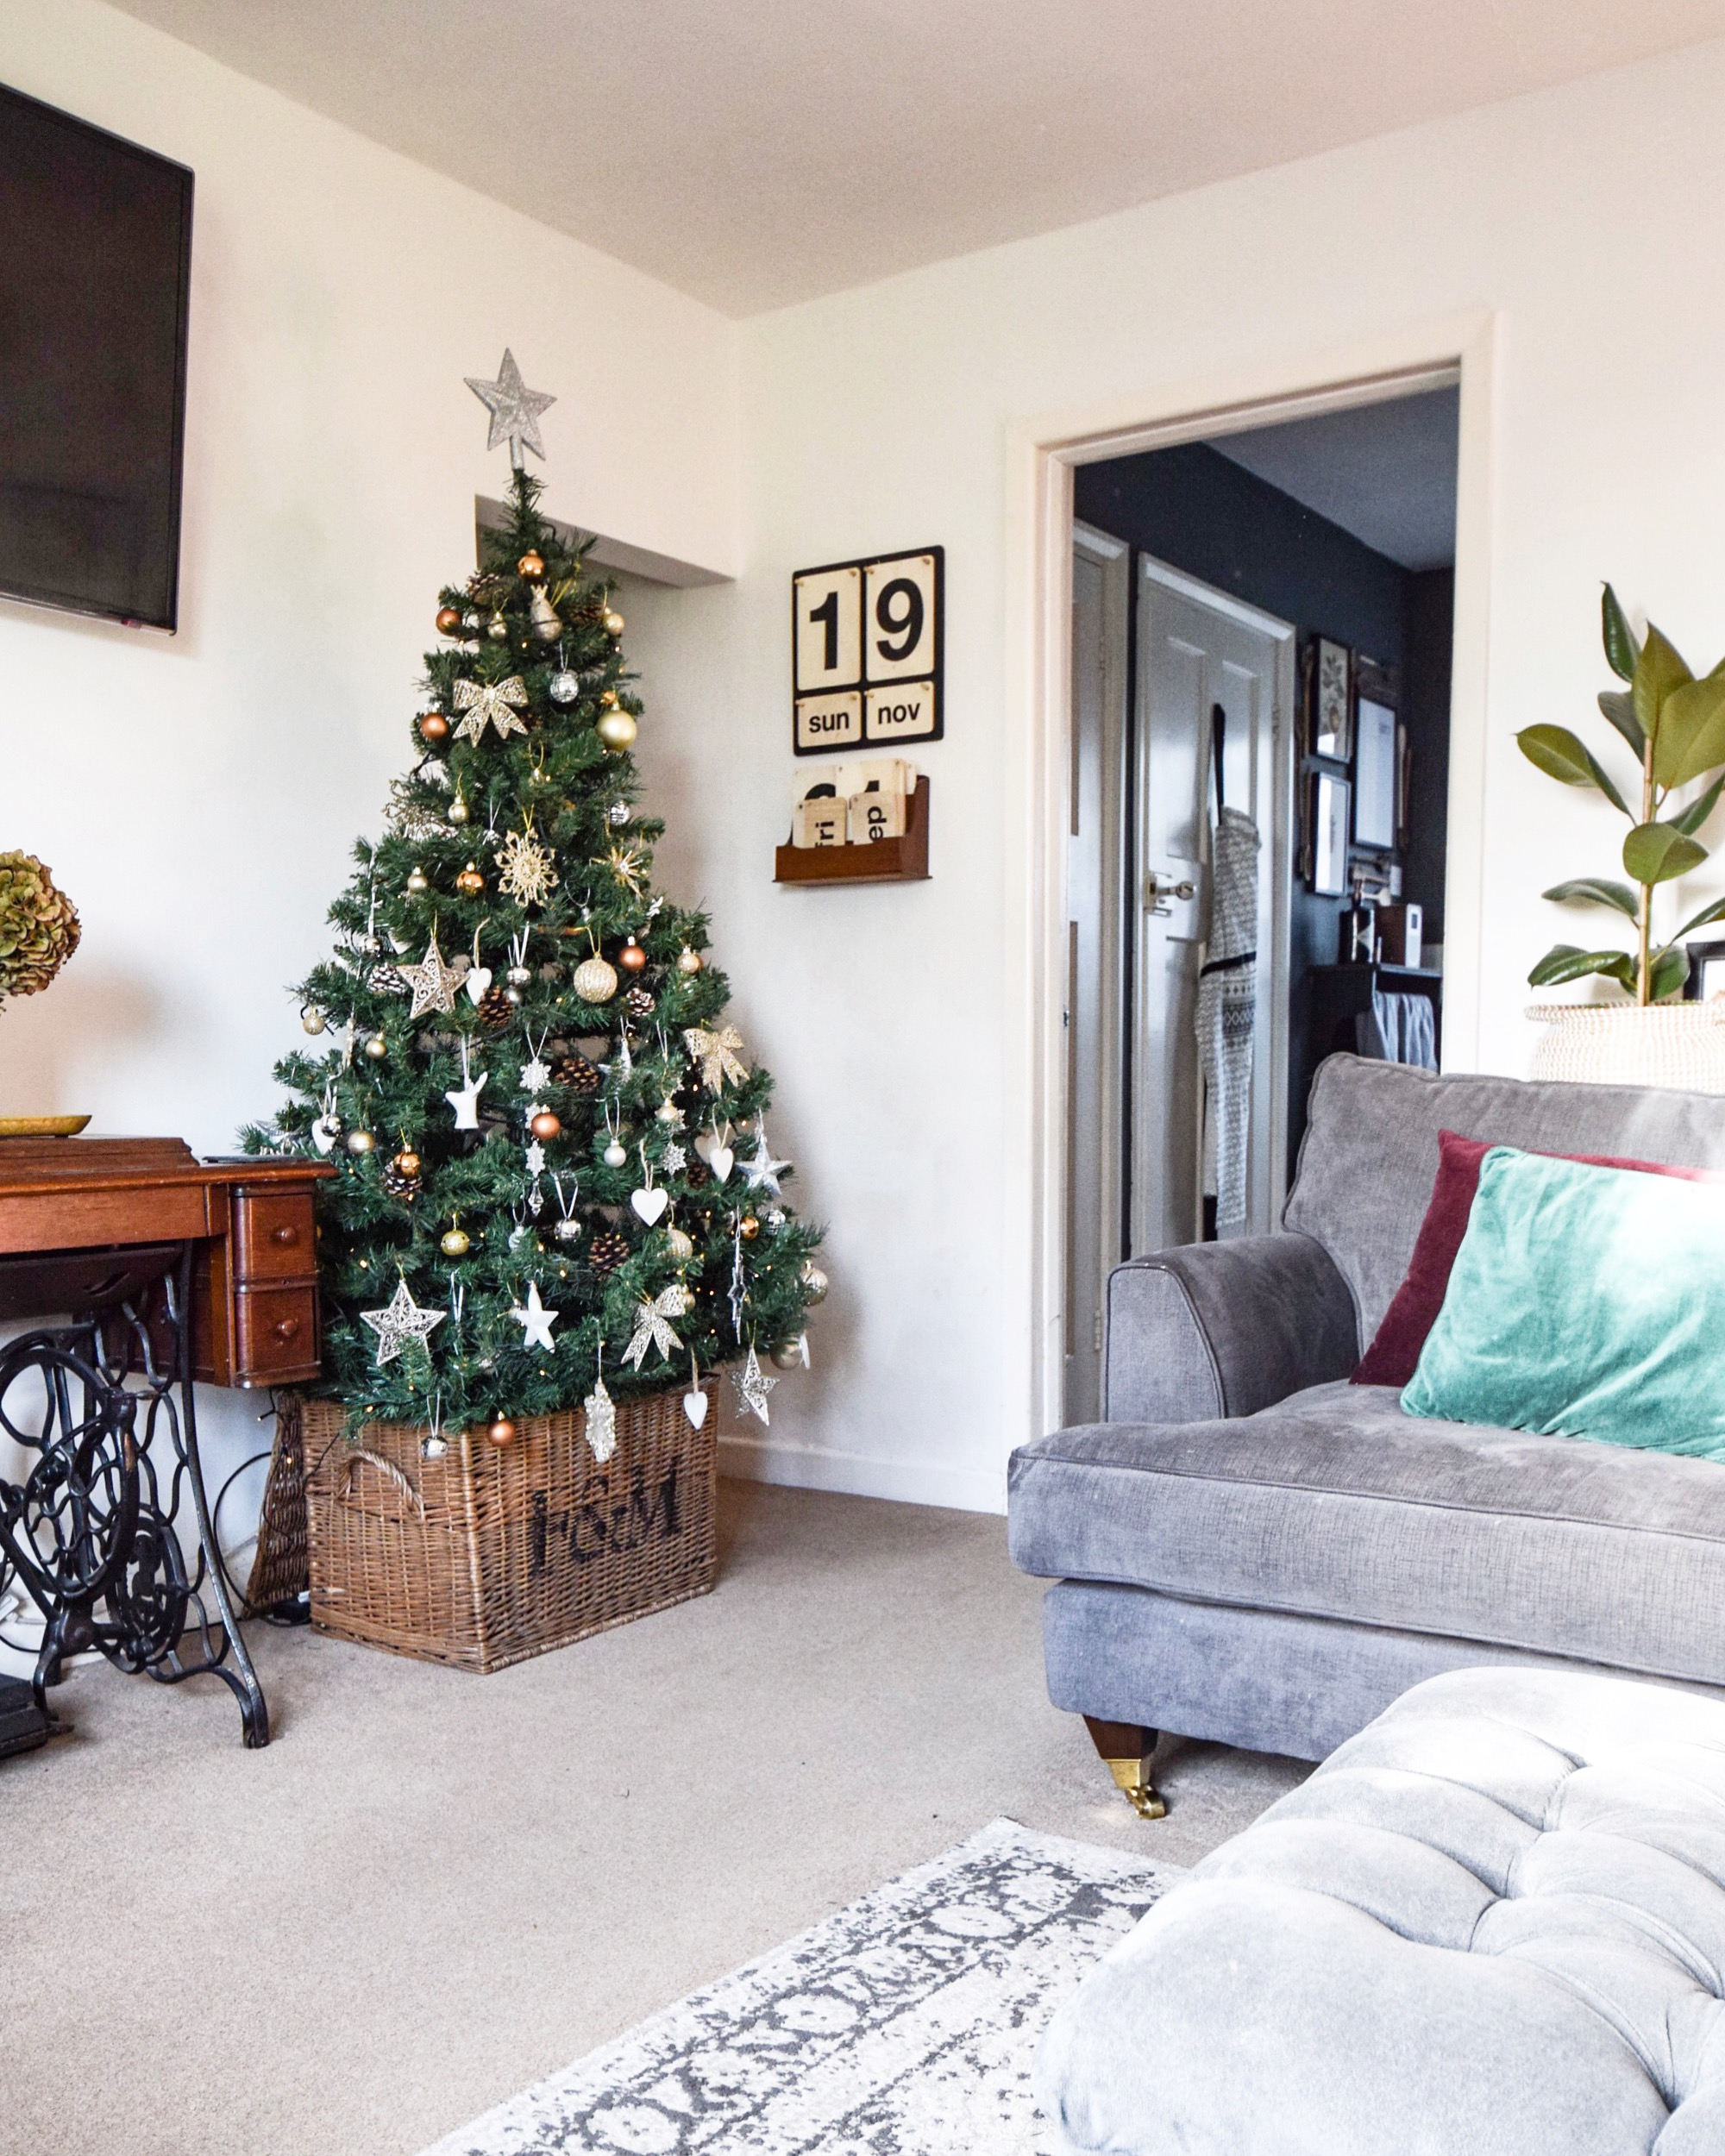 wayfair have so many christmas trees to chose from different heights different colours ones with lights ones with snow the choice really is yours - Wayfair Christmas Decorations